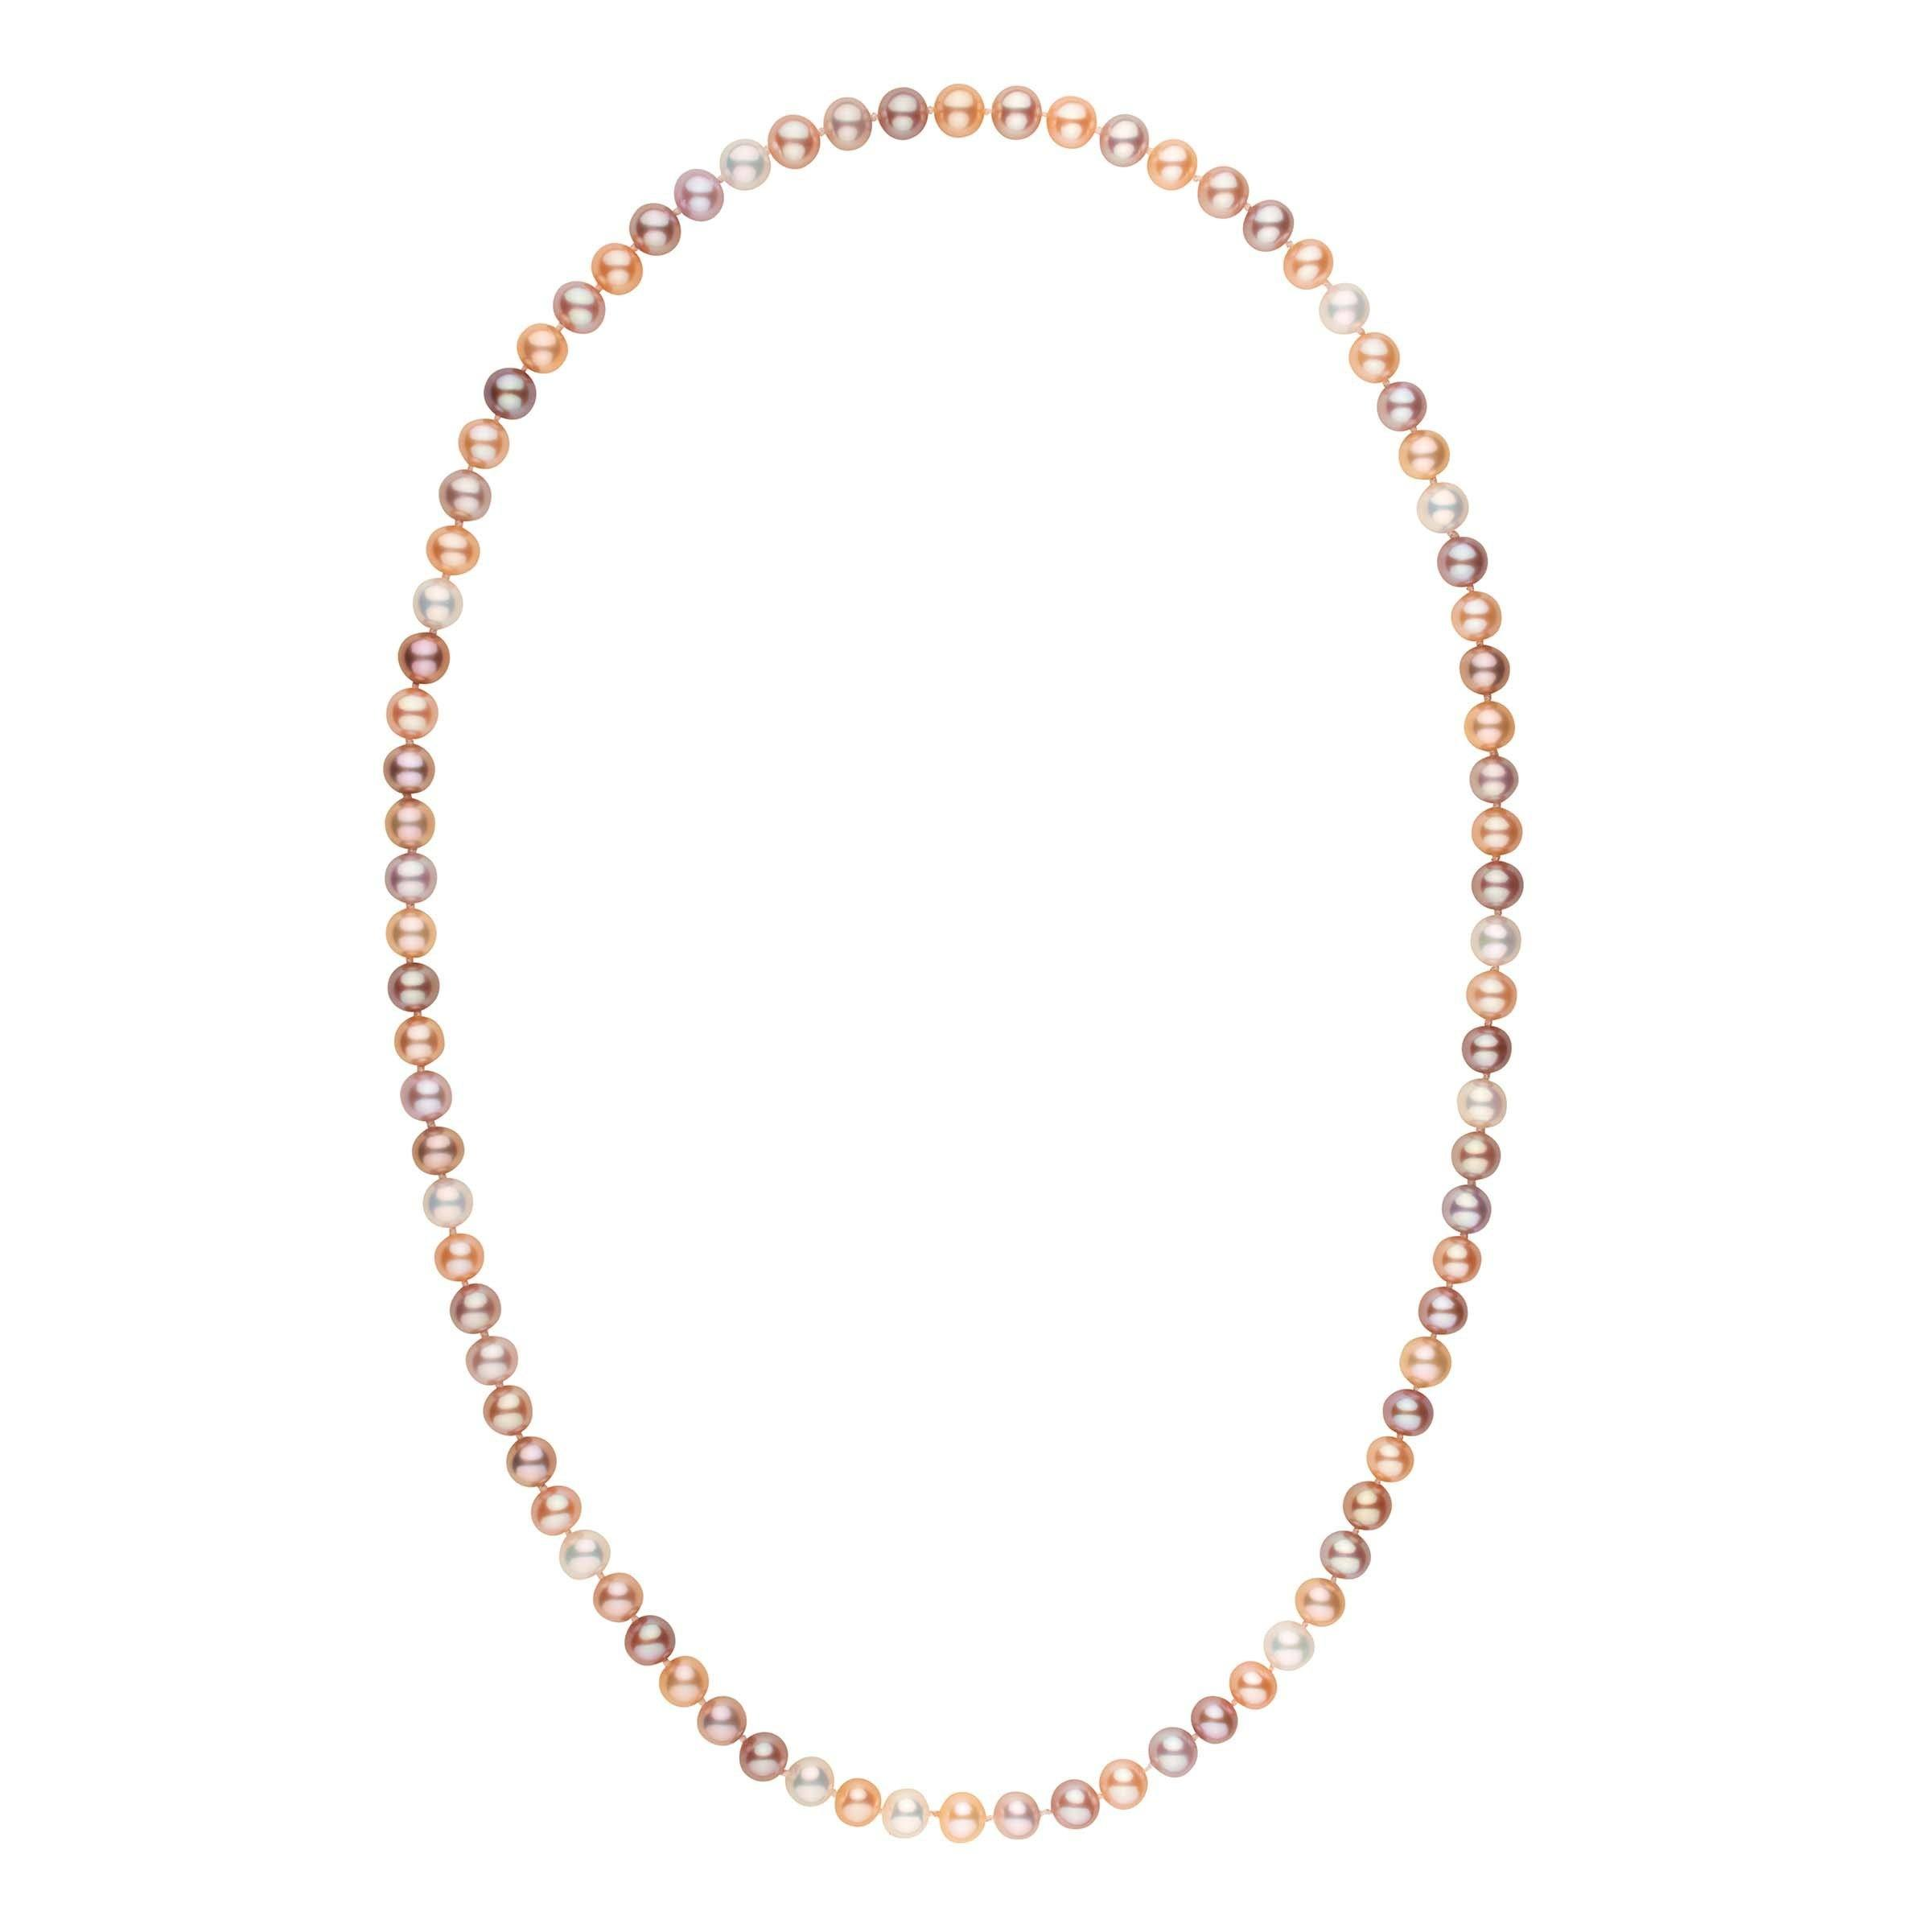 26-inch 7.5-8.0 mm AAA Multicolor Freshwater Pearl Necklace